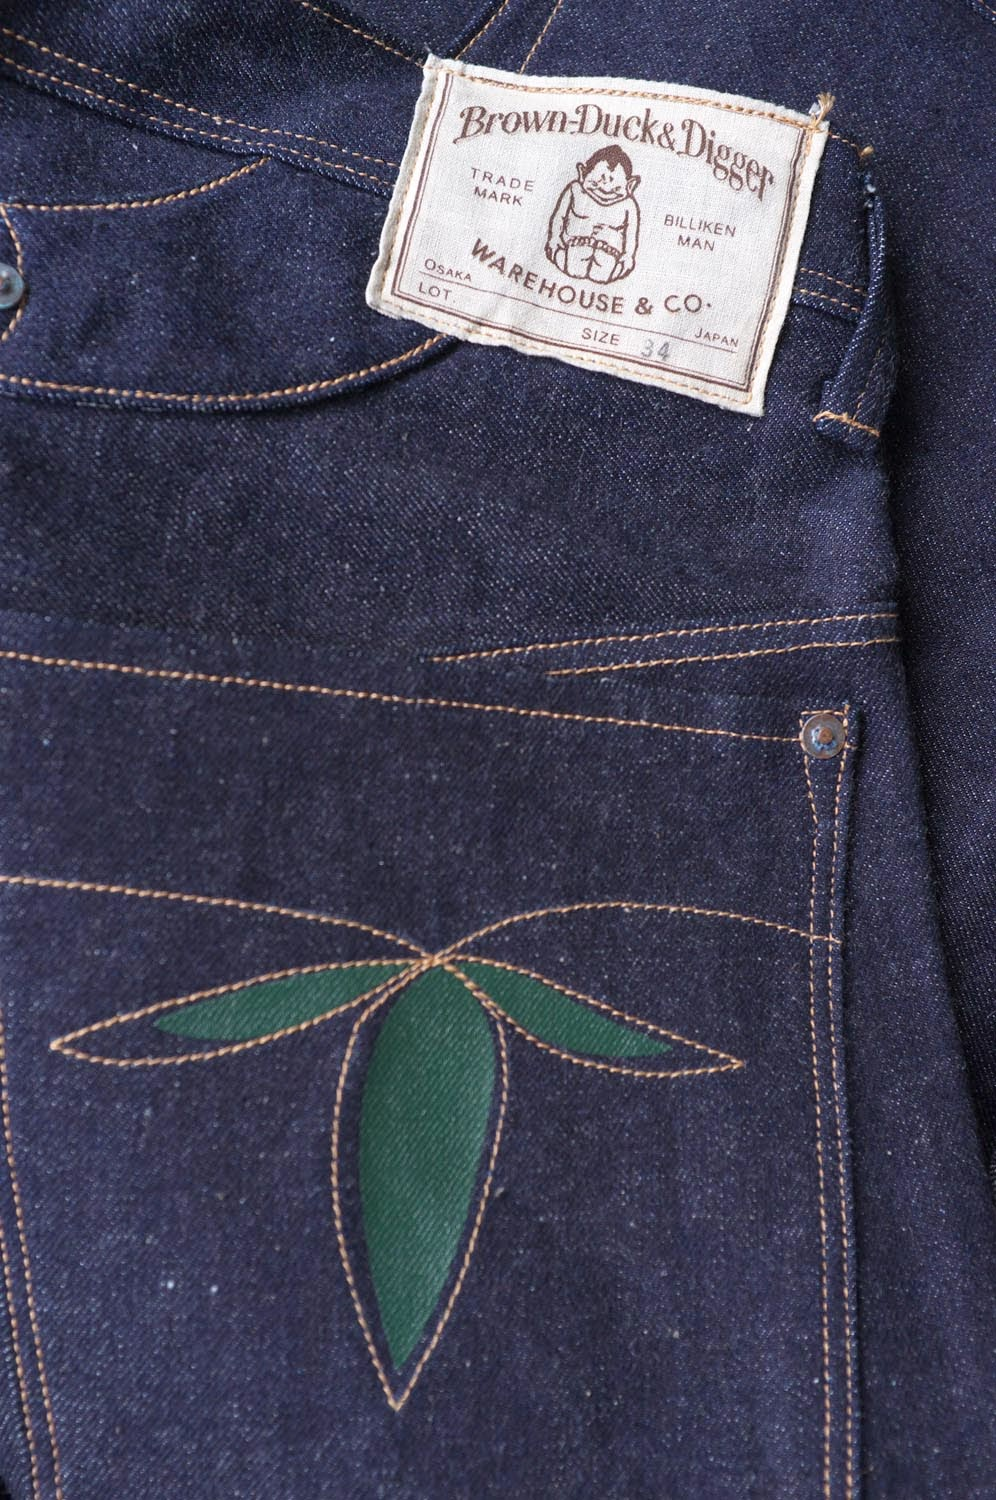 Brown-Duck & Digger 12.5 oz Rough Riders - arcuate detail